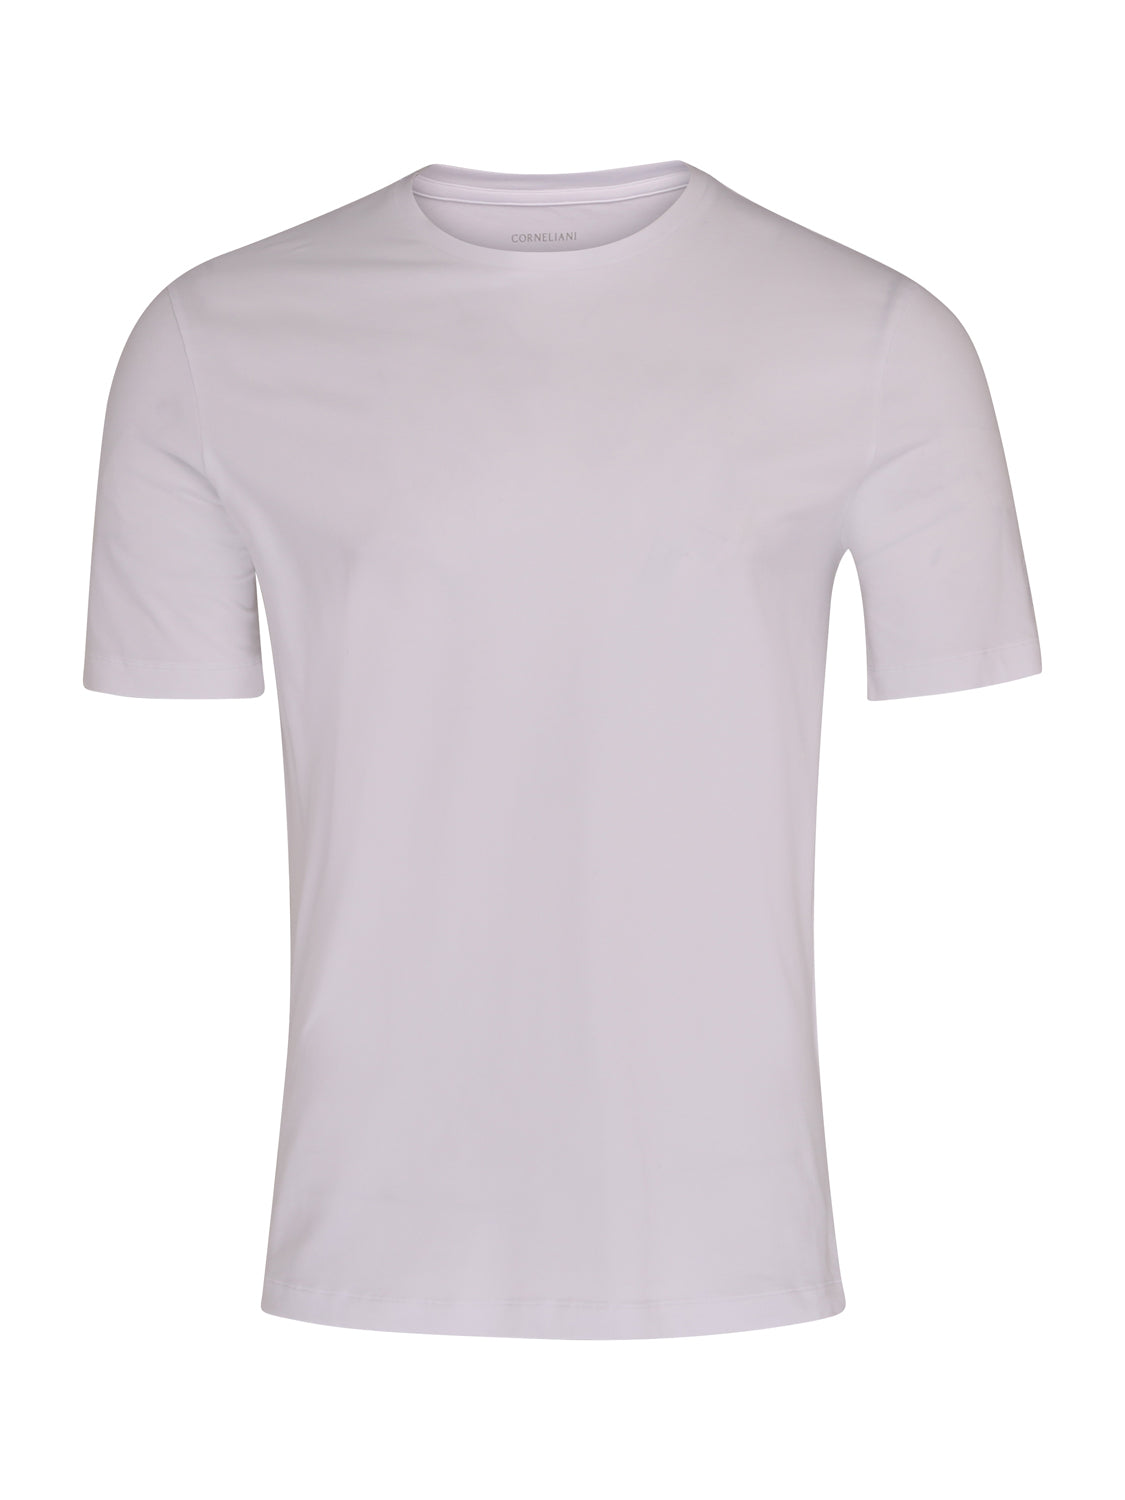 Corneliani Basic T-Shirt (White) - Union 22